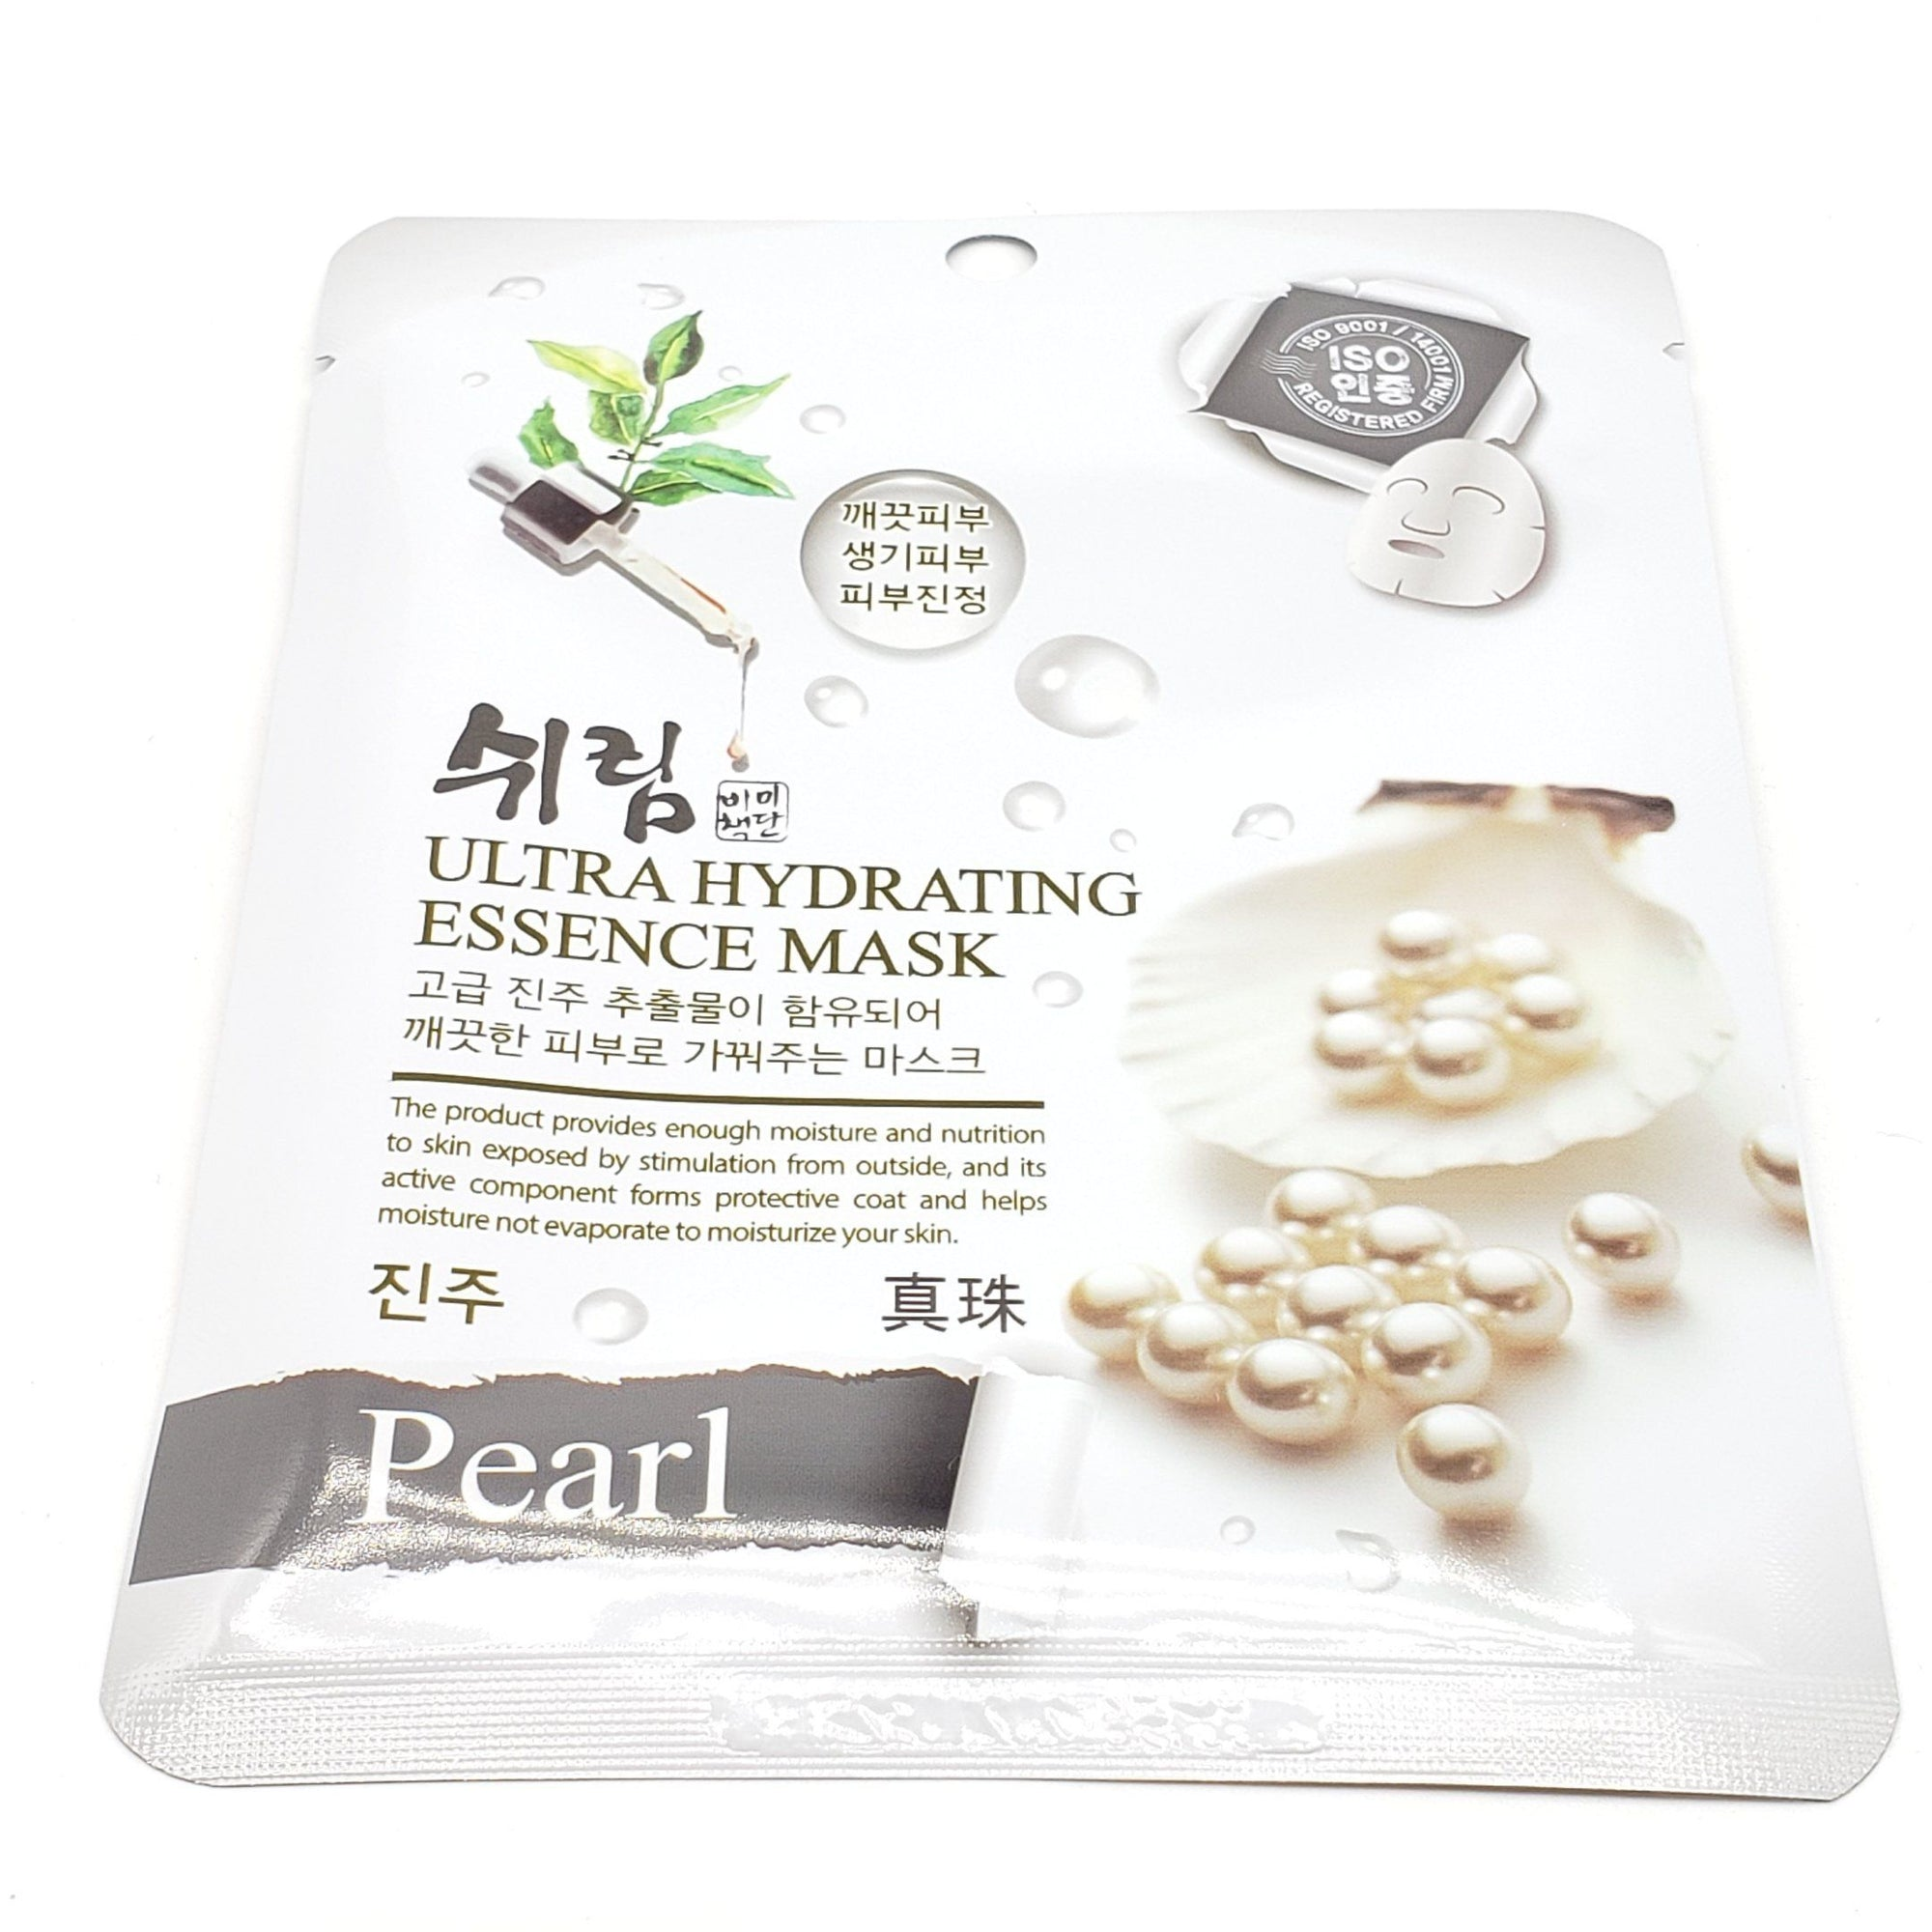 Shelim Facial Essence Mask Pack, Pearl (10PC)